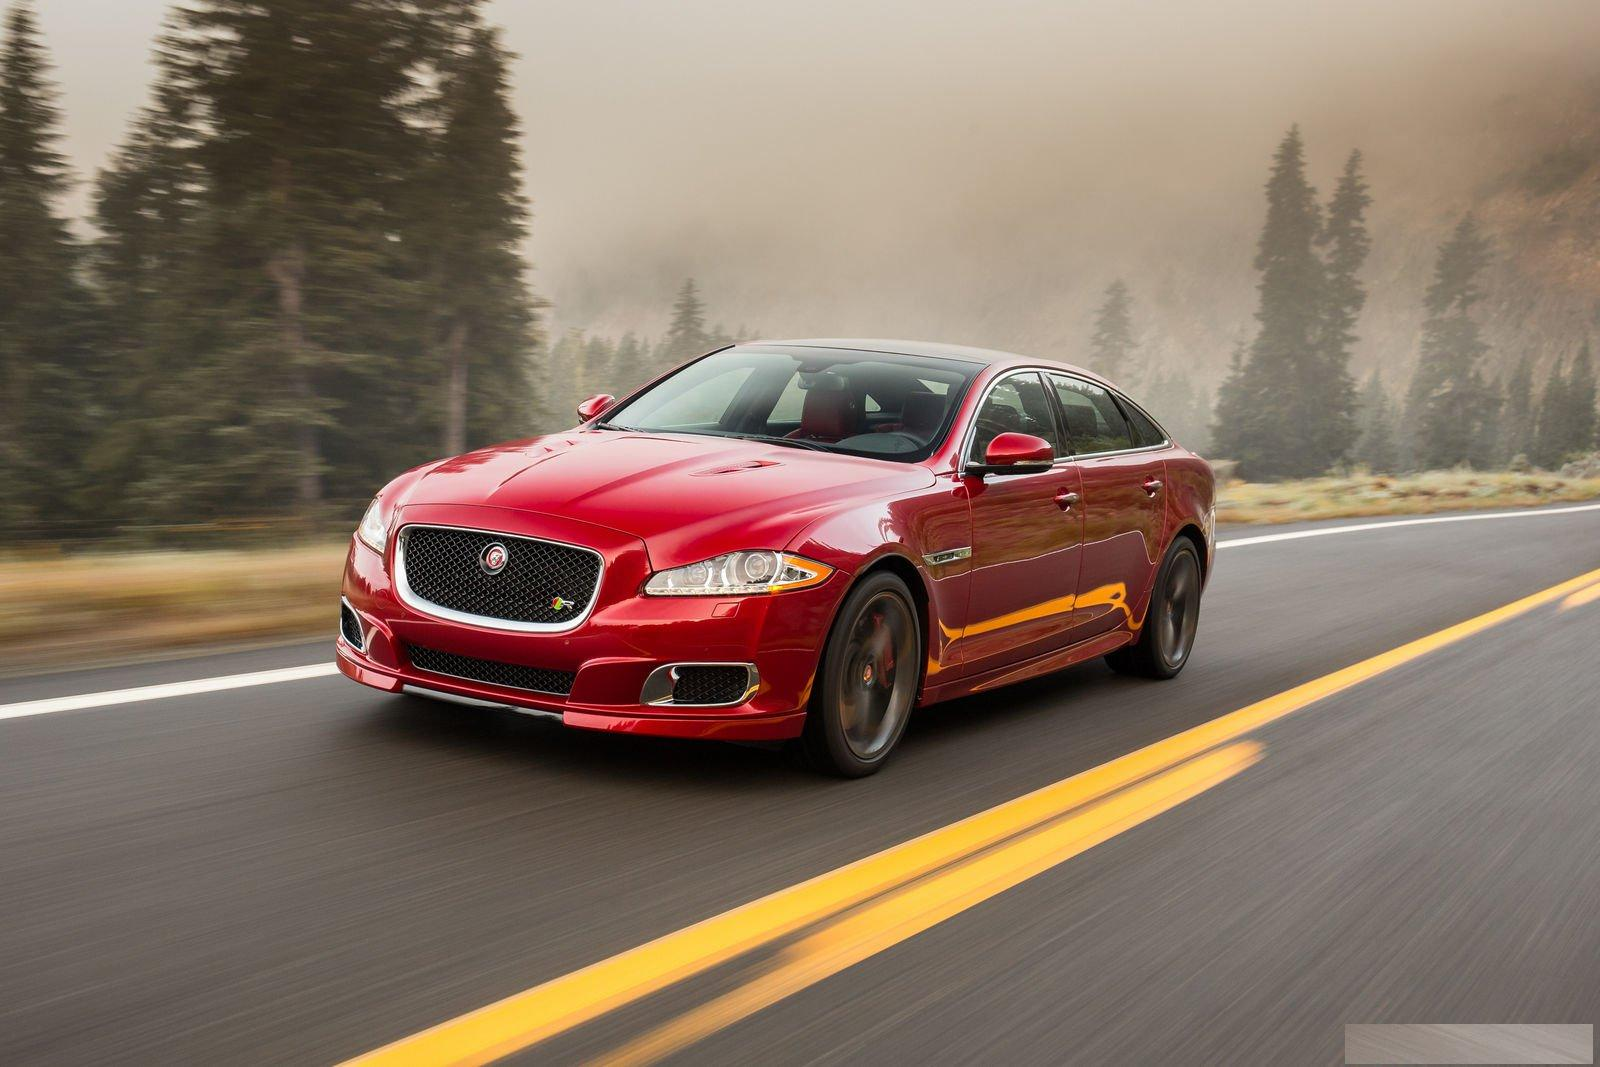 All Types 2016 xj : 2016 Jaguar Xj iv – pictures, information and specs - Auto ...